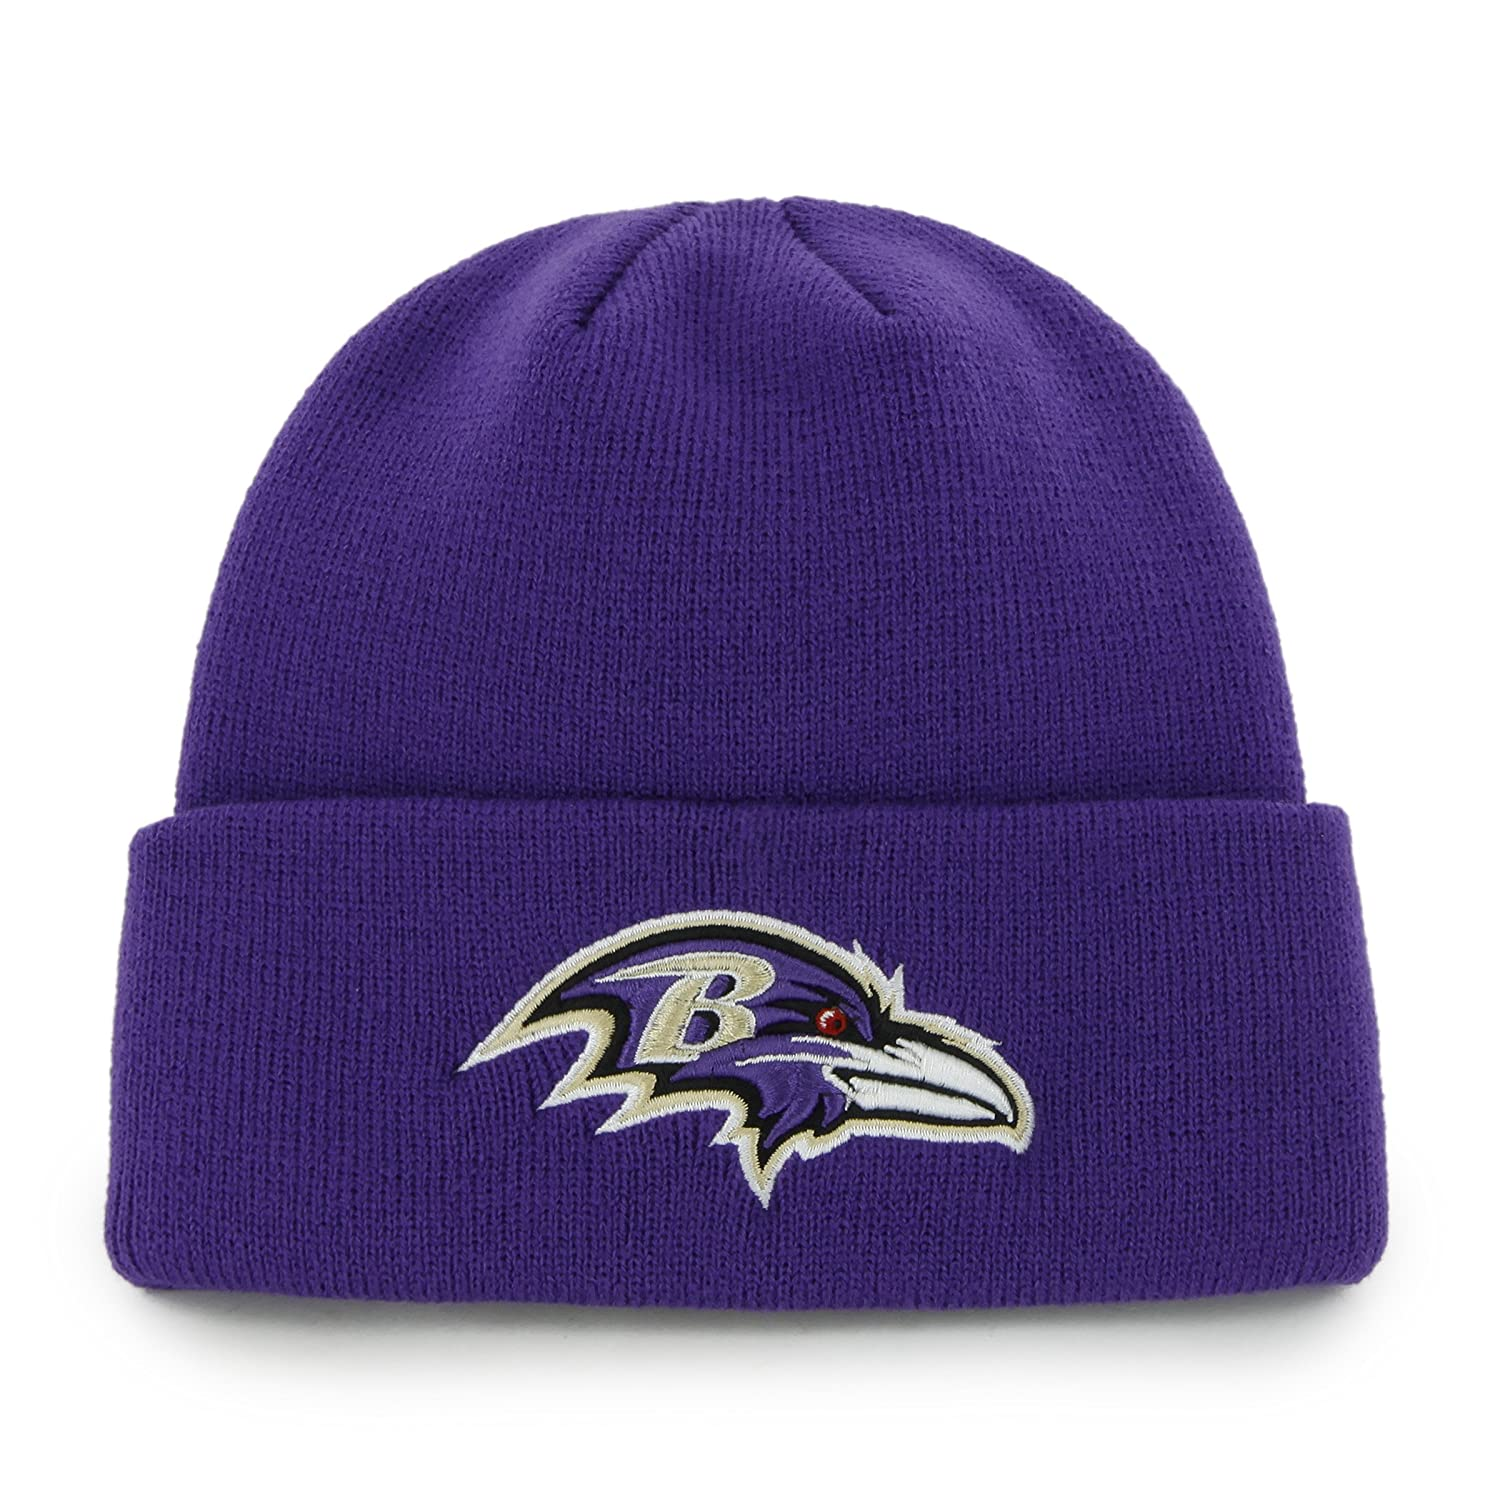 NFL Youth ' 47 Raised Cuffニット帽子 Youth Baltimore Ravens B00GOGSOCK